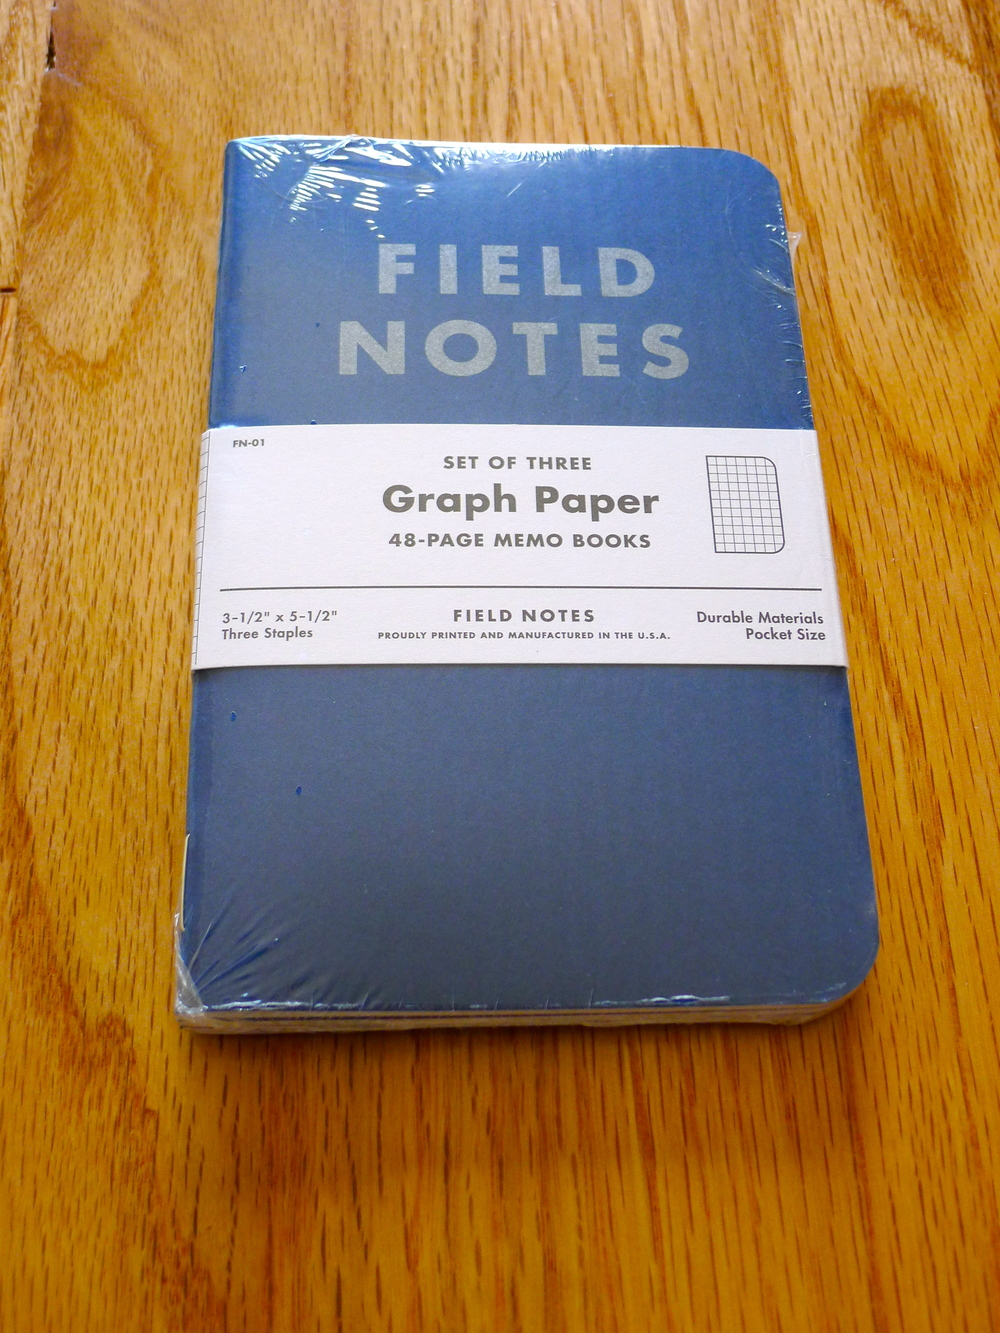 Field Notes American Tradesman Edition - Summer 2011